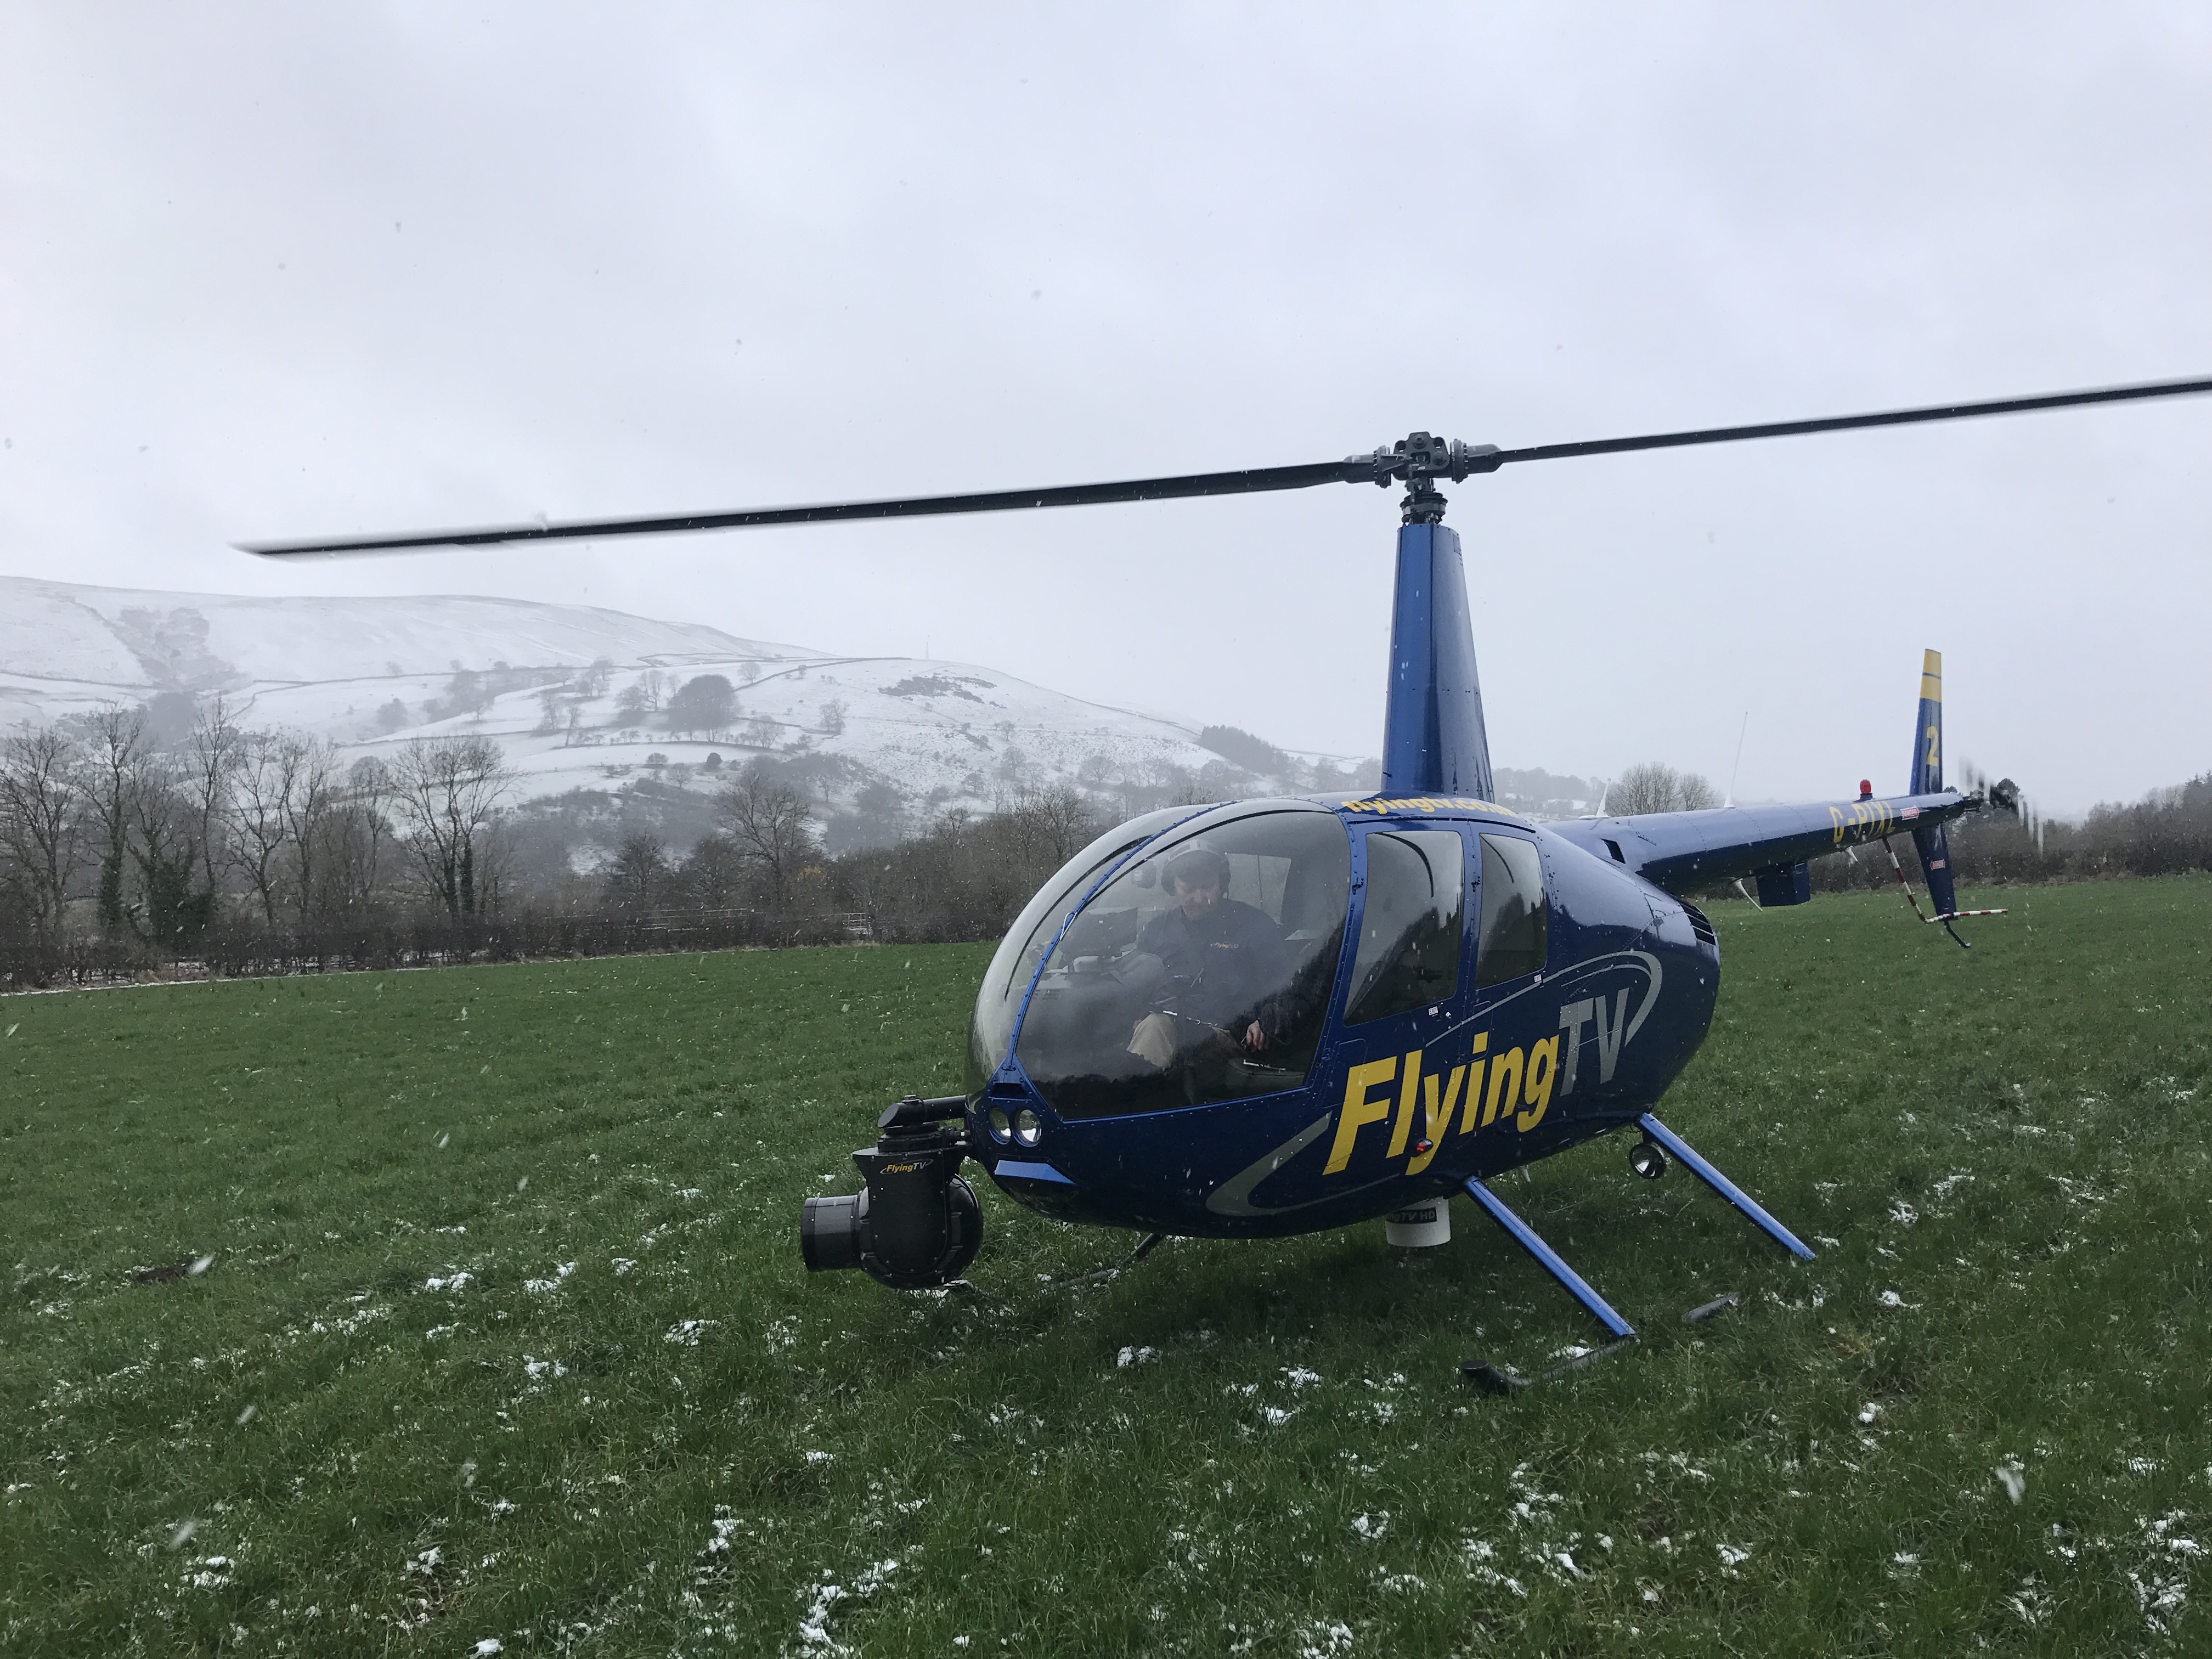 Robinson R44 Raven aerial filming helicopter